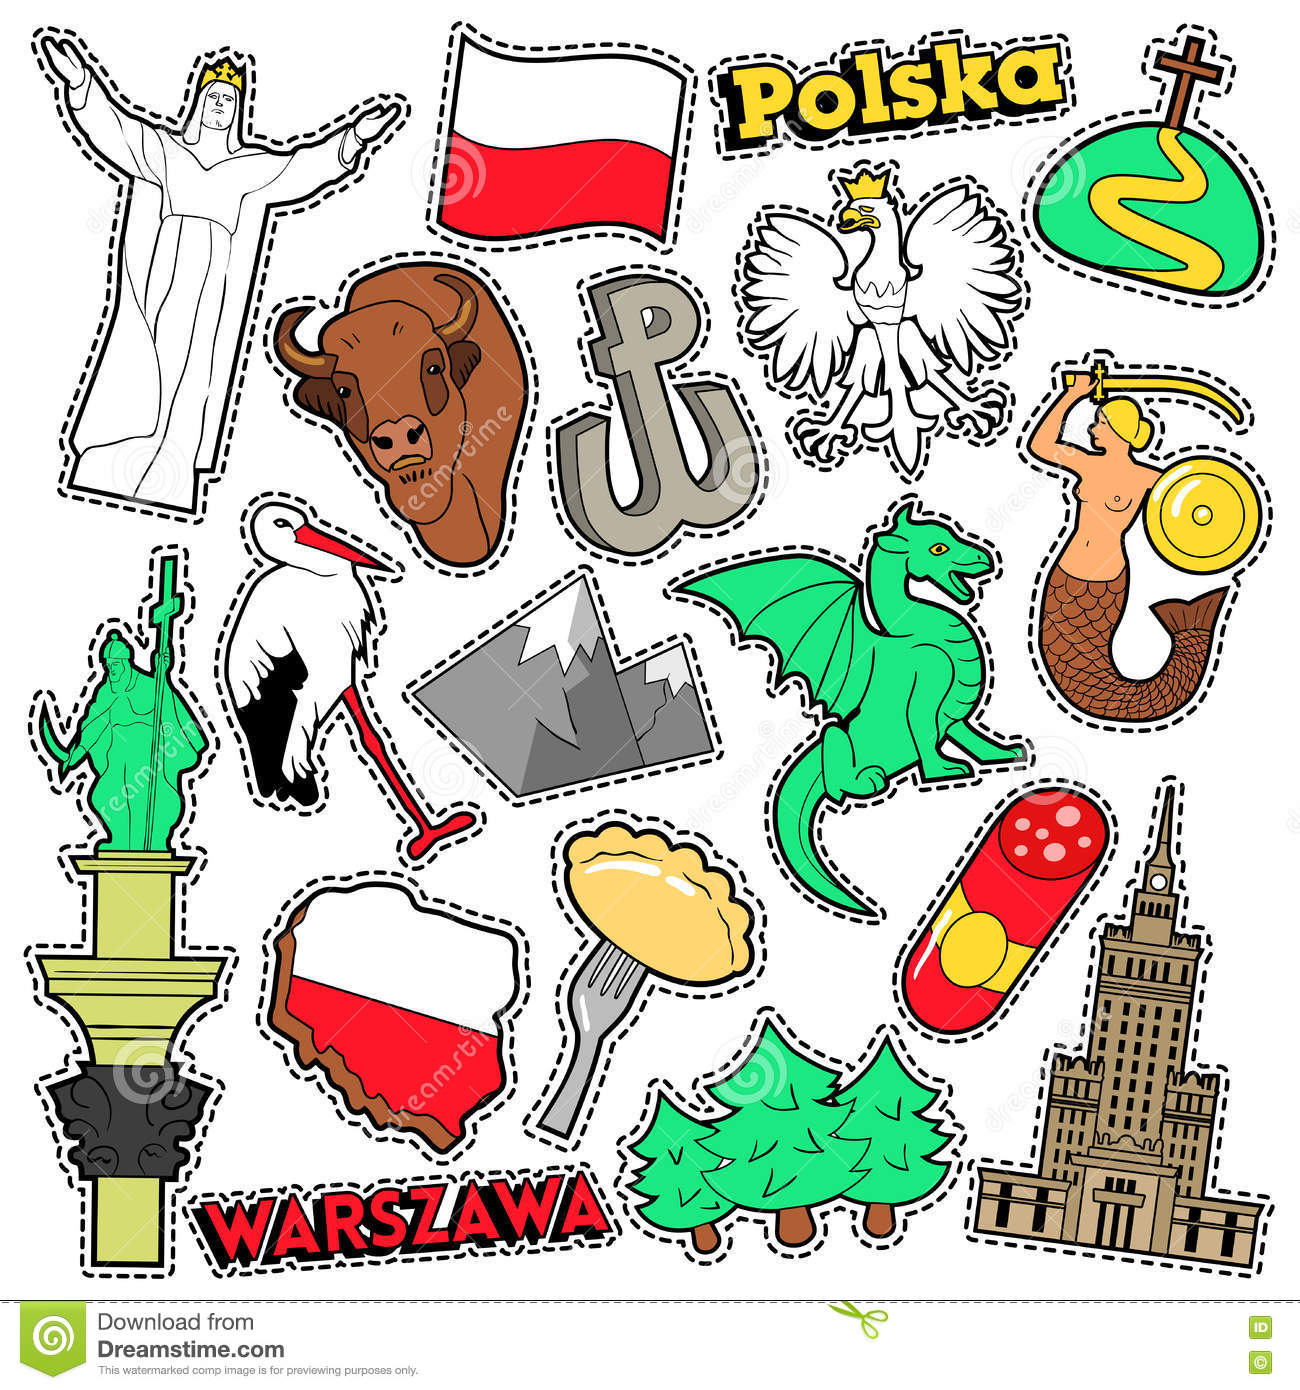 Poland Travel Scrapbook Stickers Patches Badges For Prints With